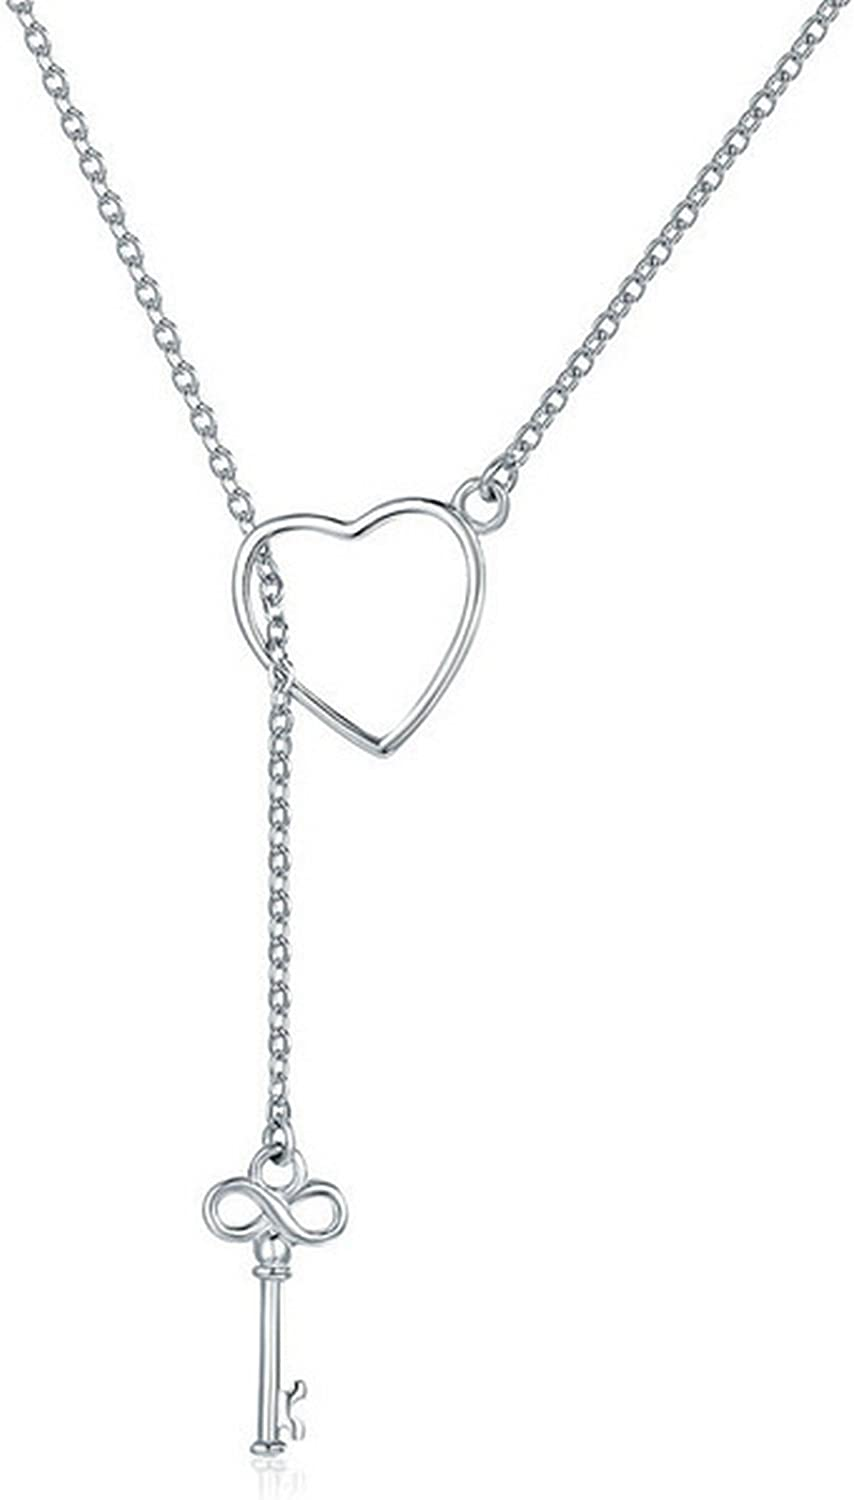 CS-DB Jewelry Silver Two Heart Chain Charm Pendants Necklaces